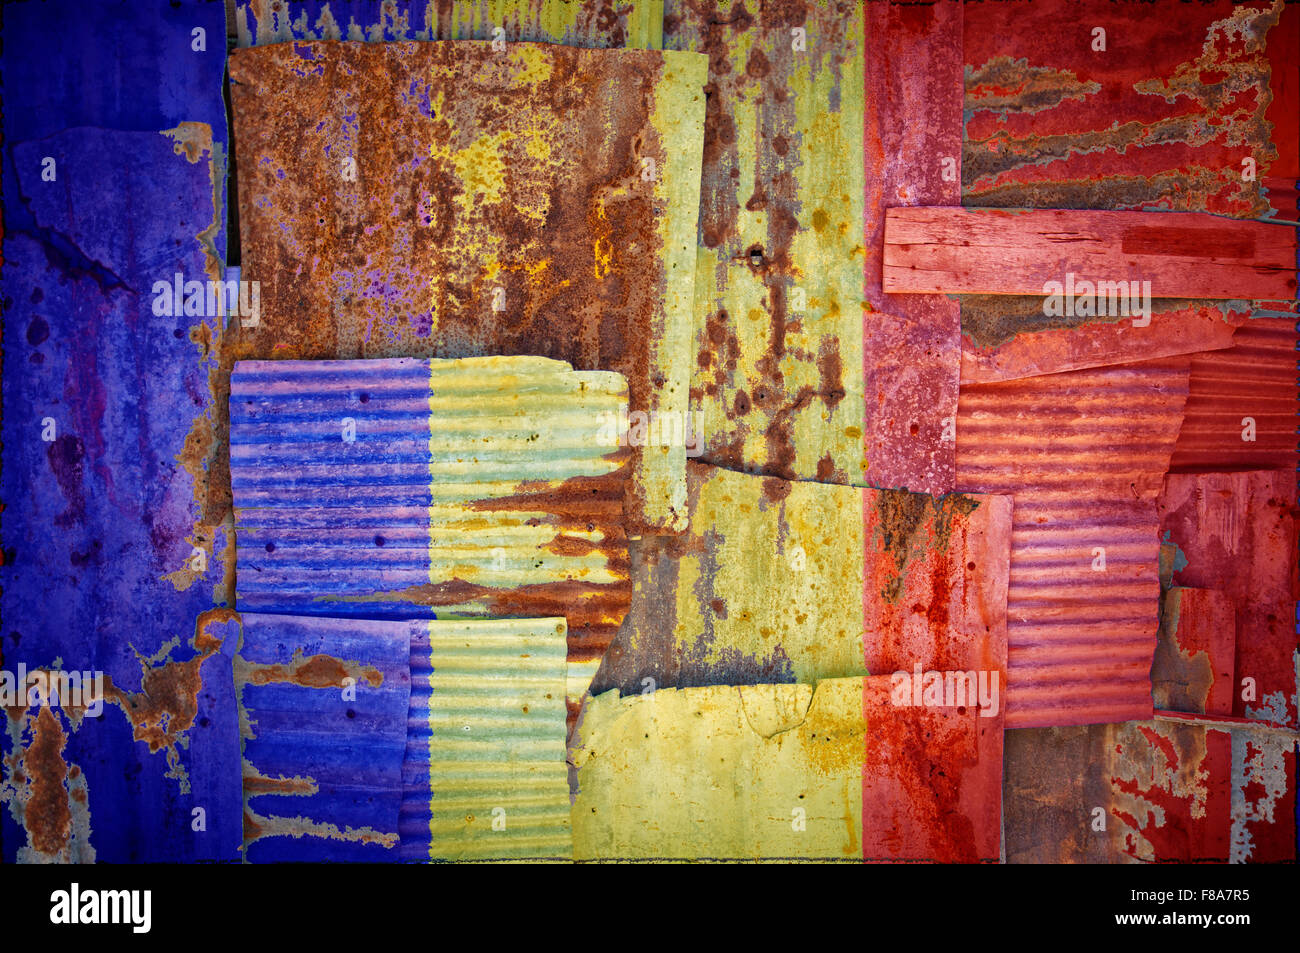 An abstract background image of the flag of Chad painted on to rusty corrugated iron sheets overlapping to form - Stock Image